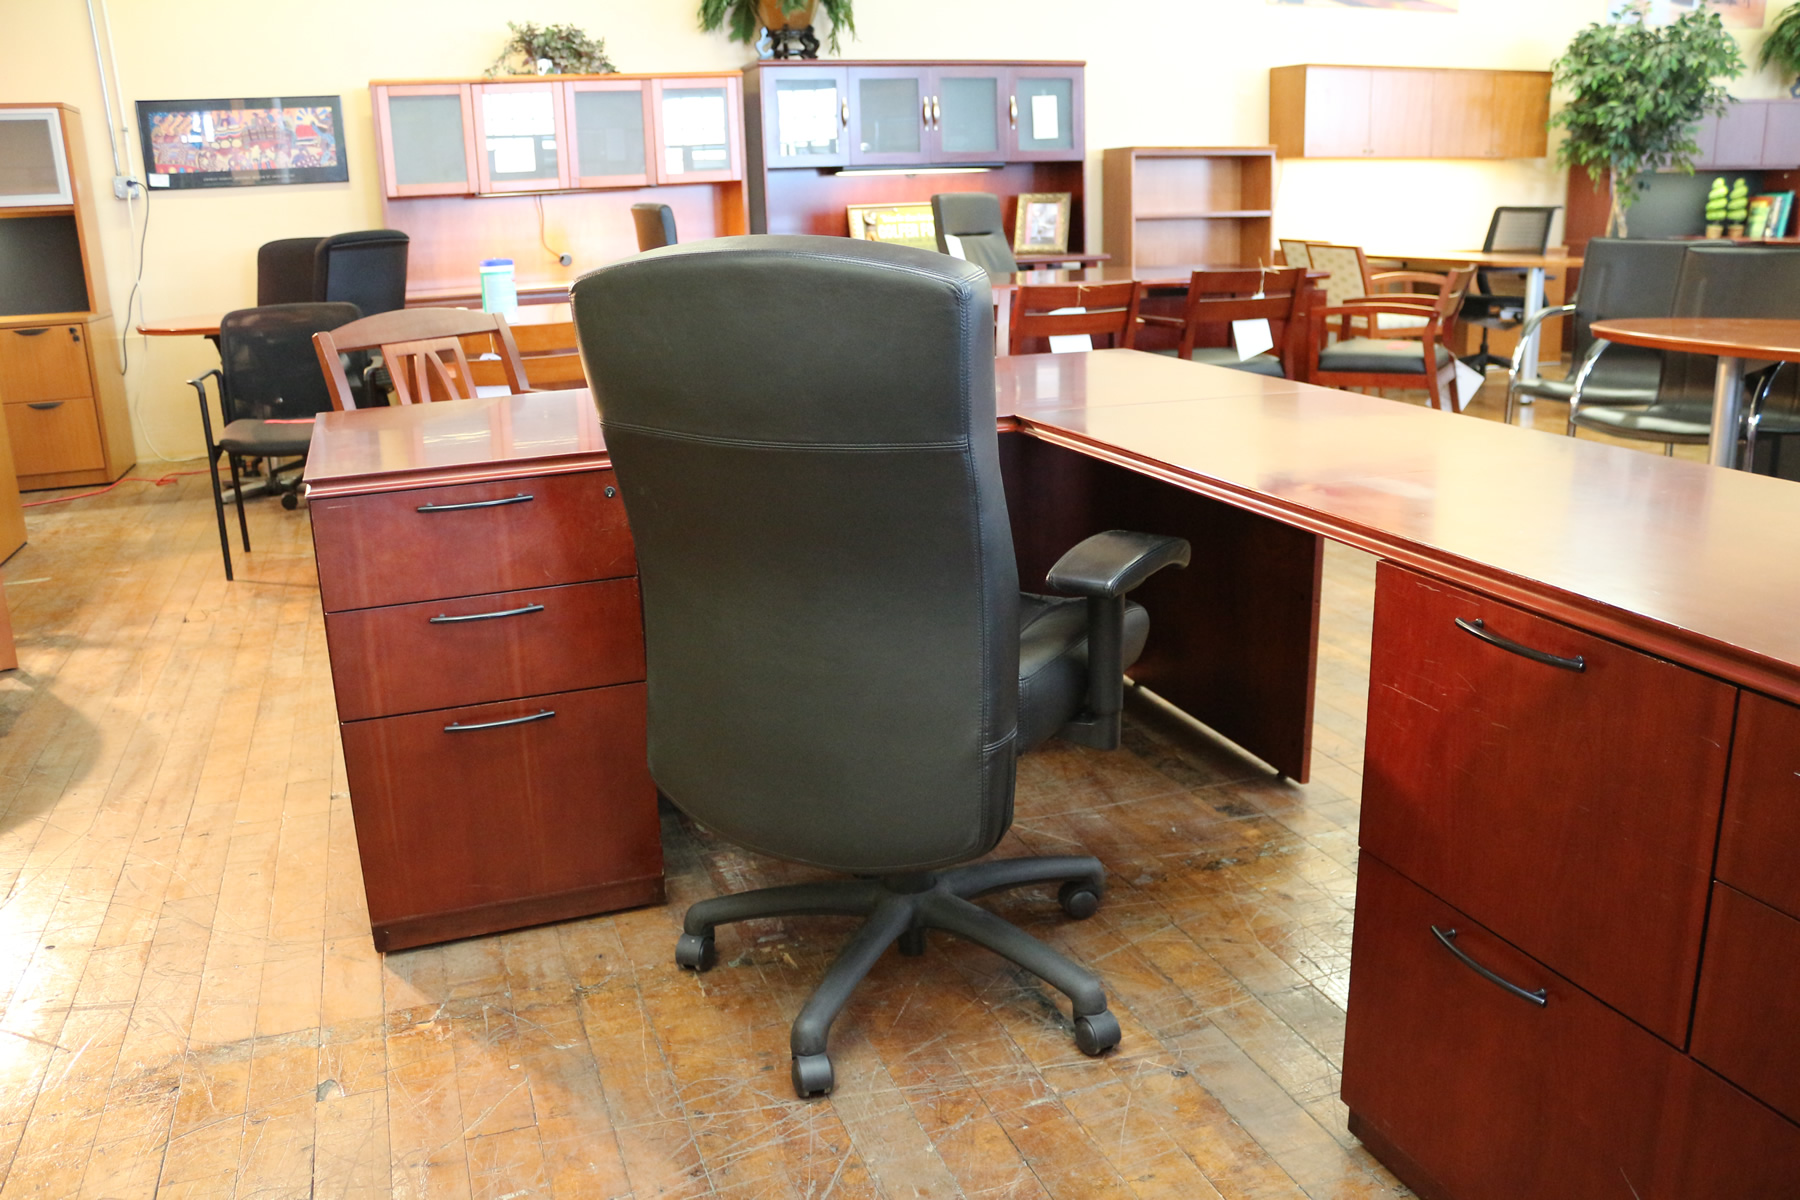 peartreeofficefurniture_peartreeofficefurniture_img_7447.jpg